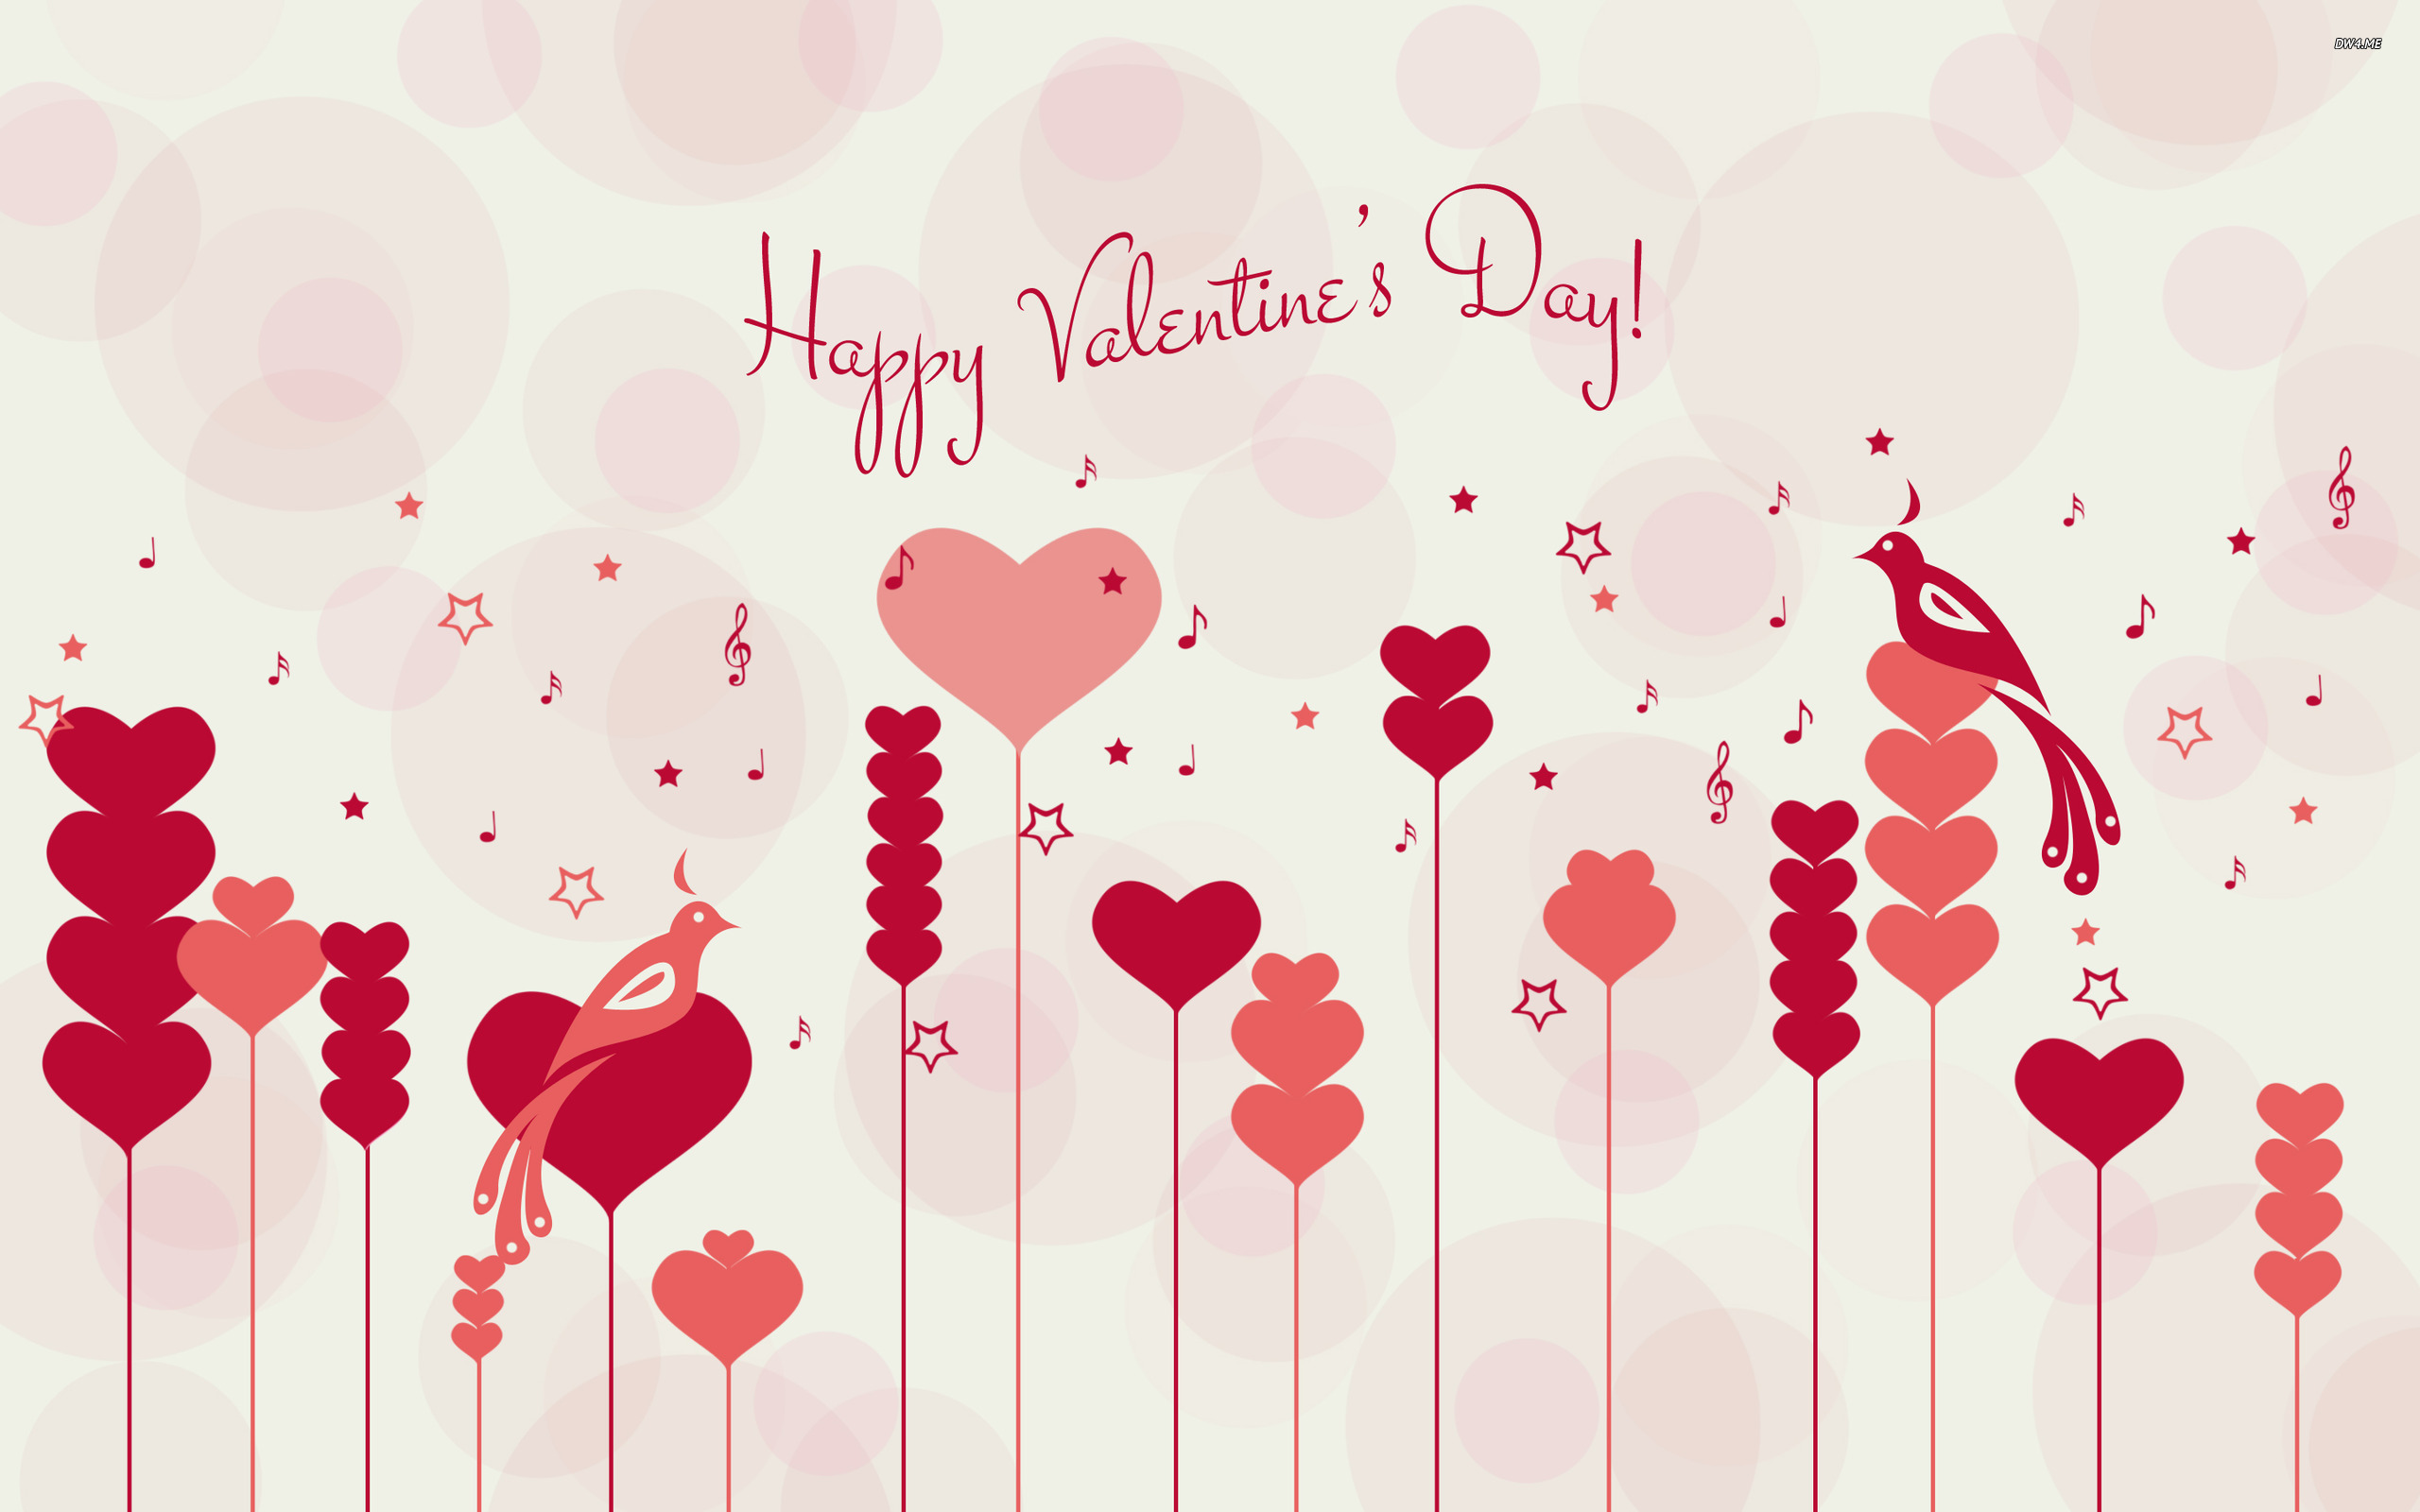 Valentine S Day Wallpapers Top Free Valentine S Day